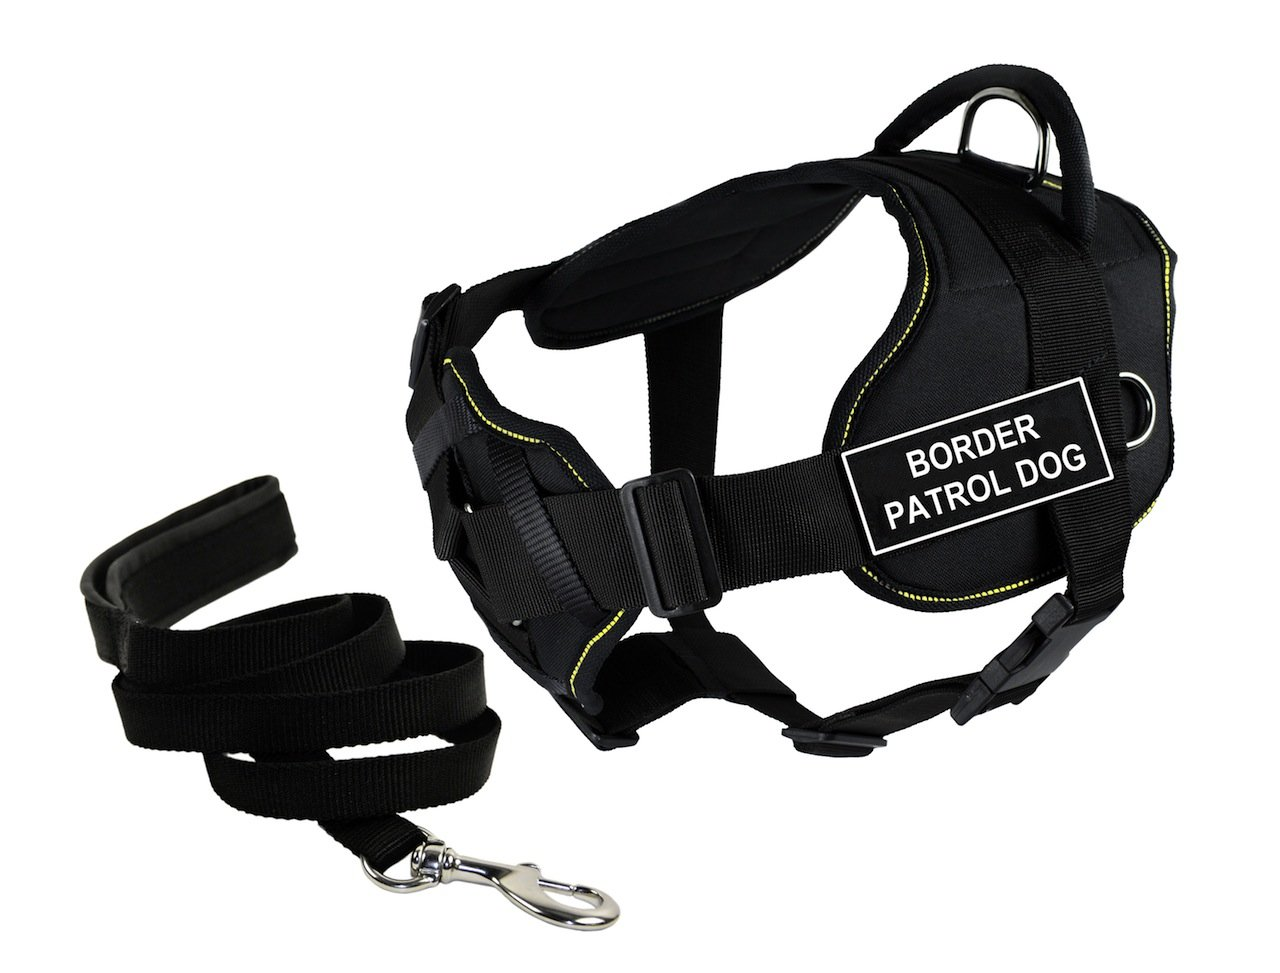 Dean & Tyler's DT Fun Chest Support BORDER PATROL DOG Harness, Medium, with 6 ft Padded Puppy Leash.